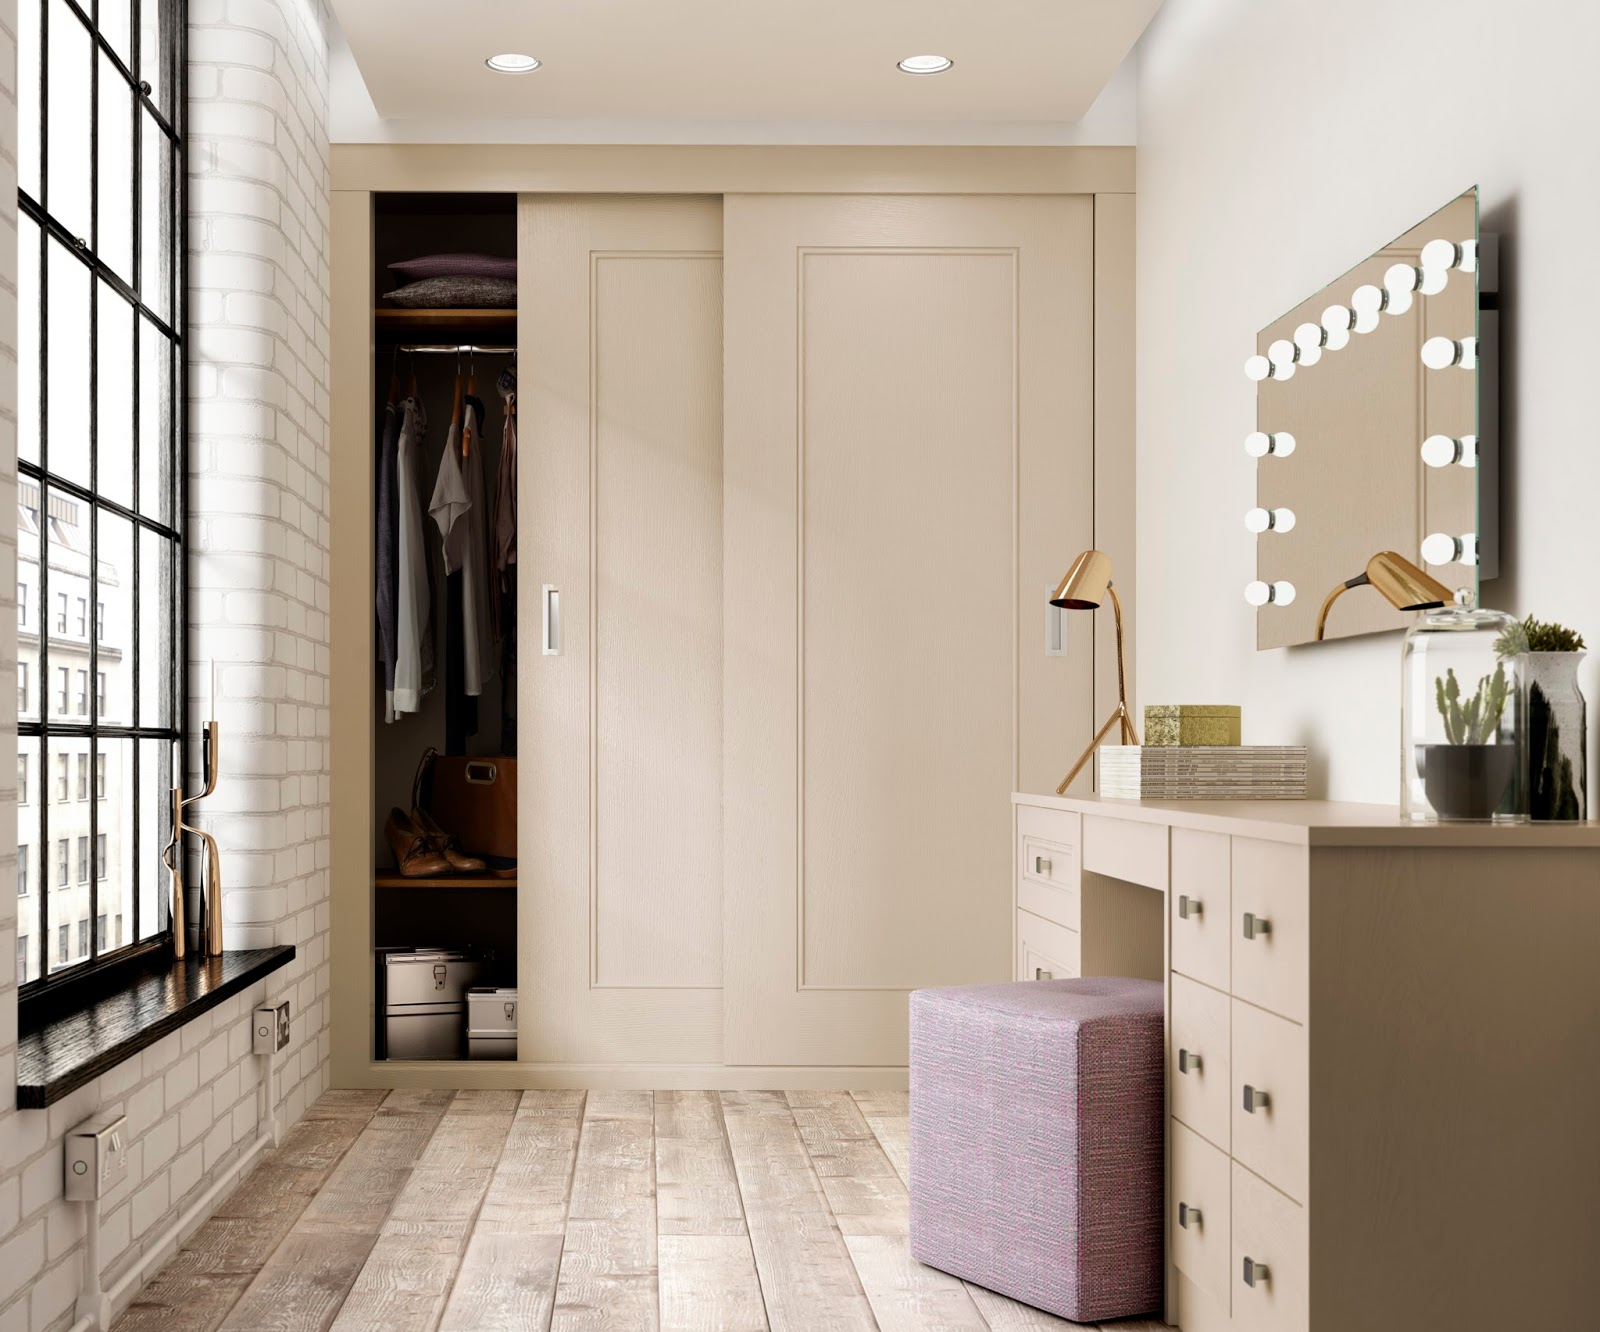 Home decor inspiration for using all available space - Dressing room small space ...